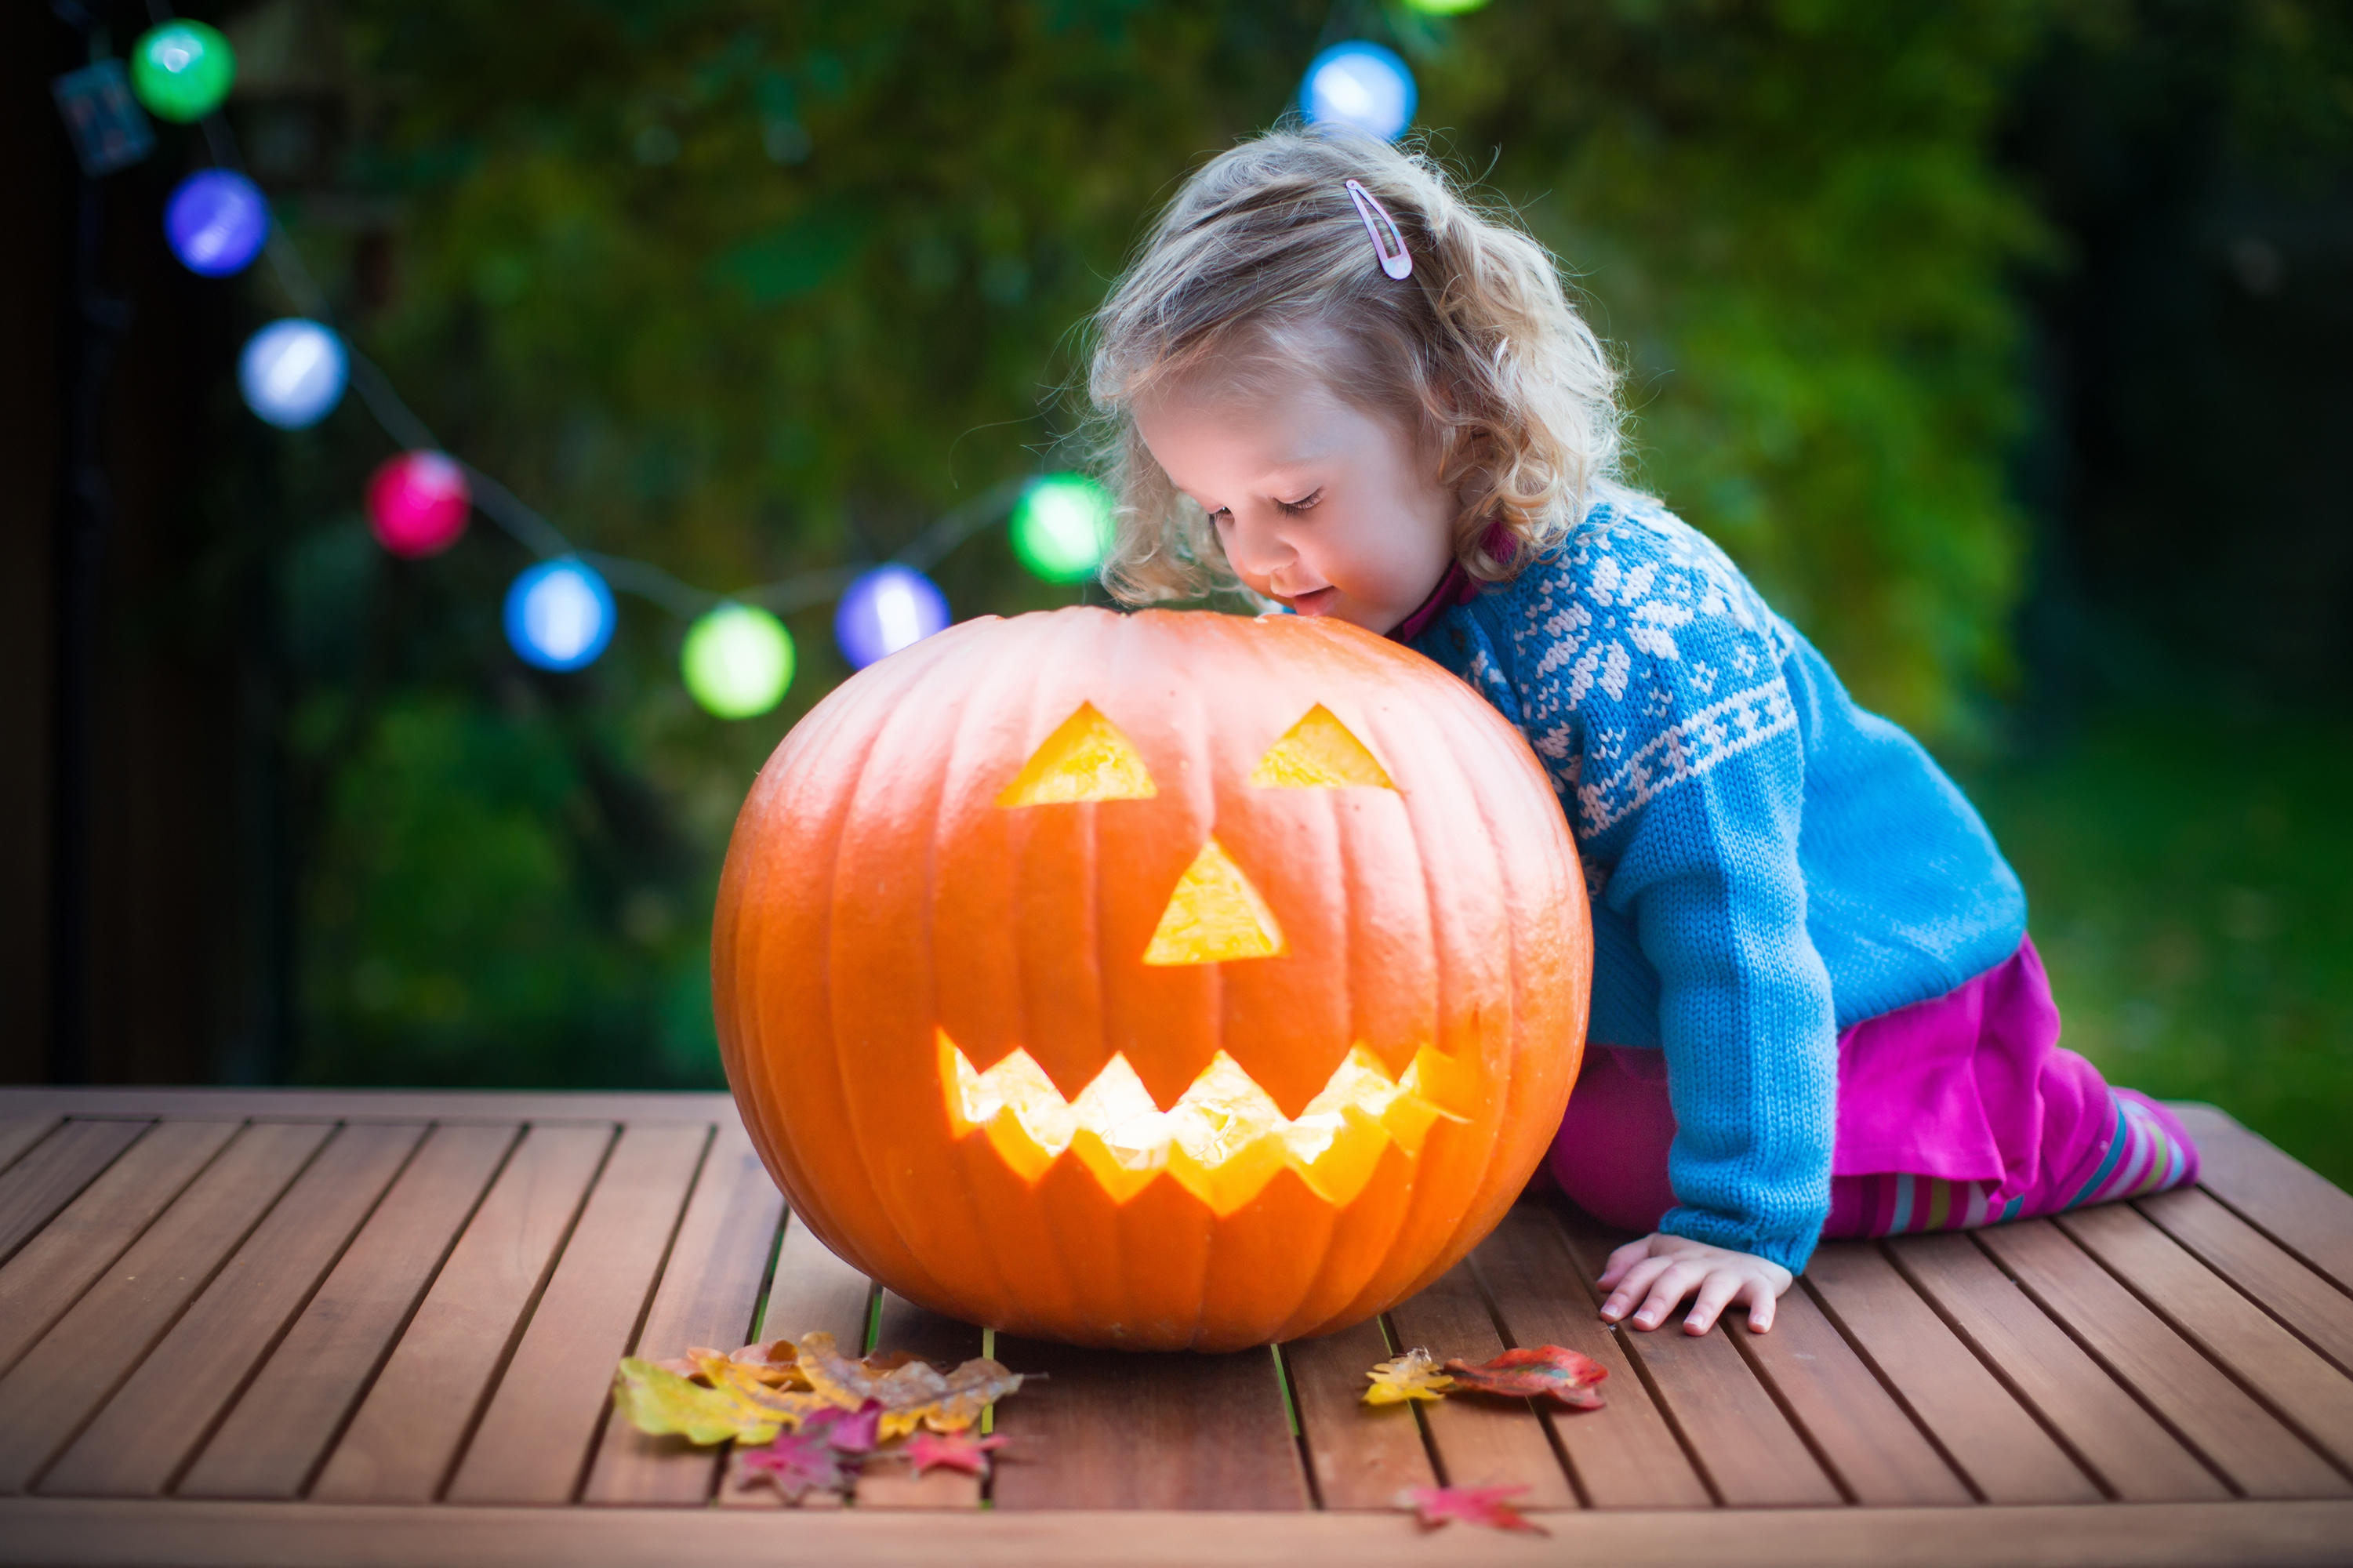 Little girl carving pumpkin at Halloween.